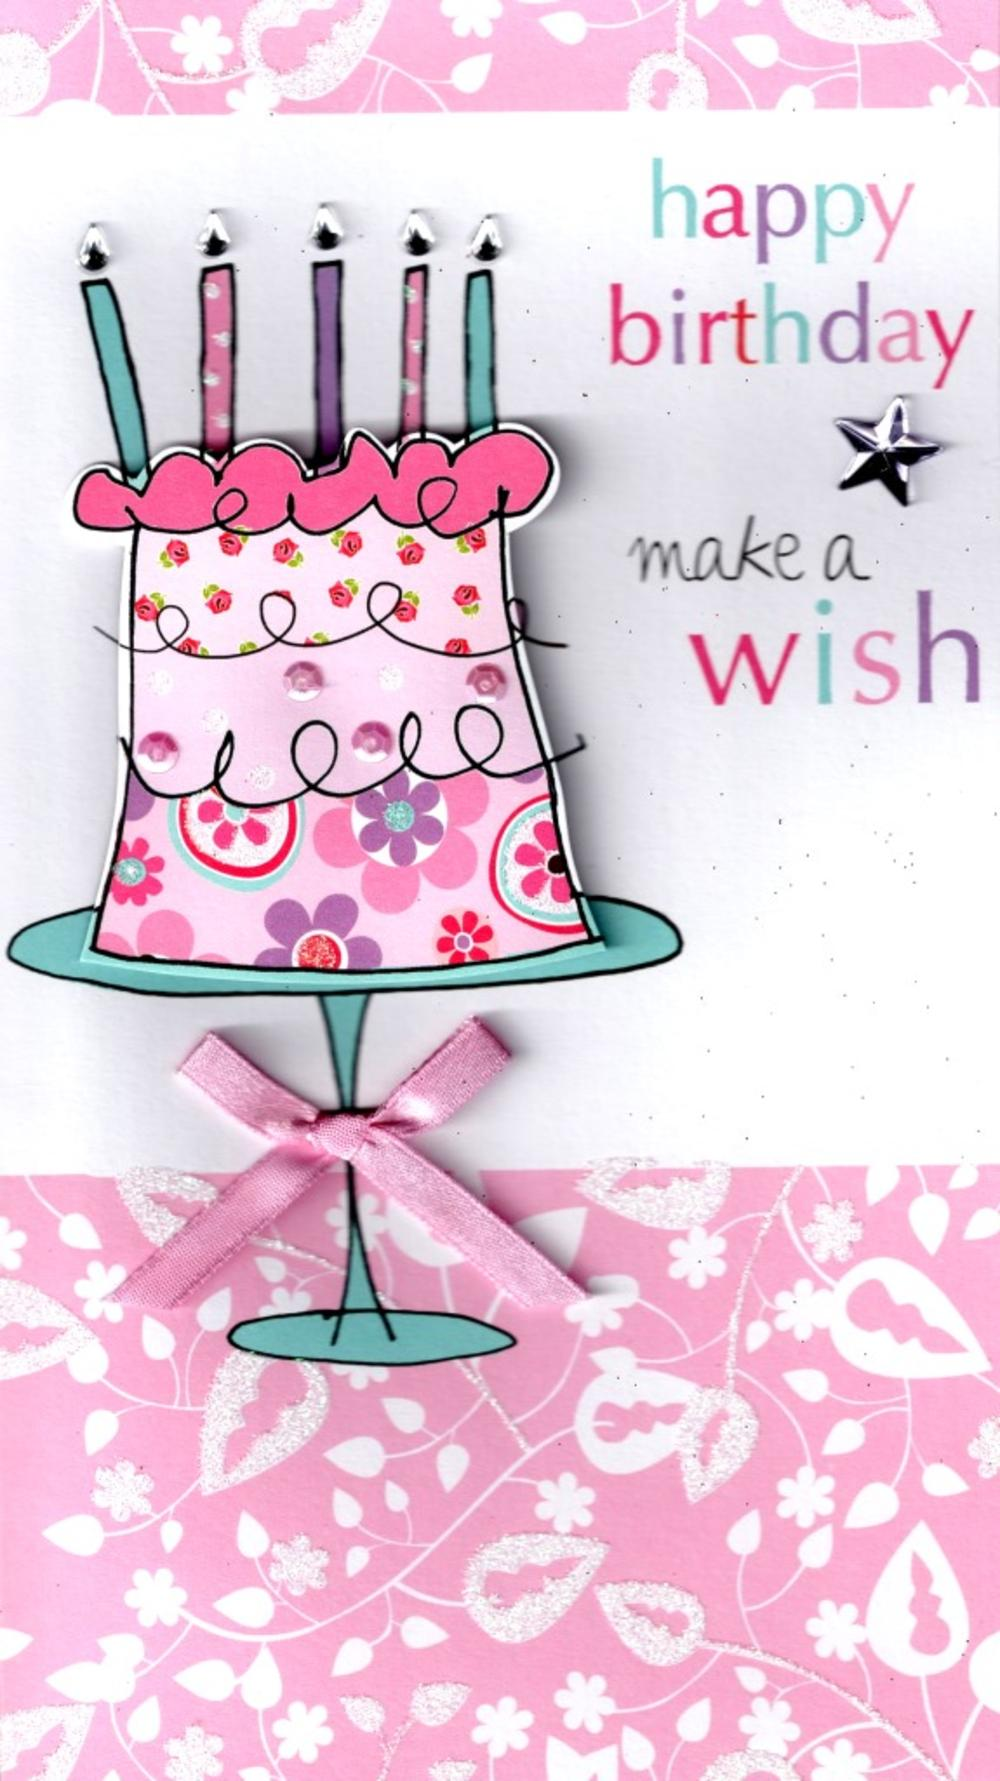 Make A Wish Happy Birthday Greeting Card